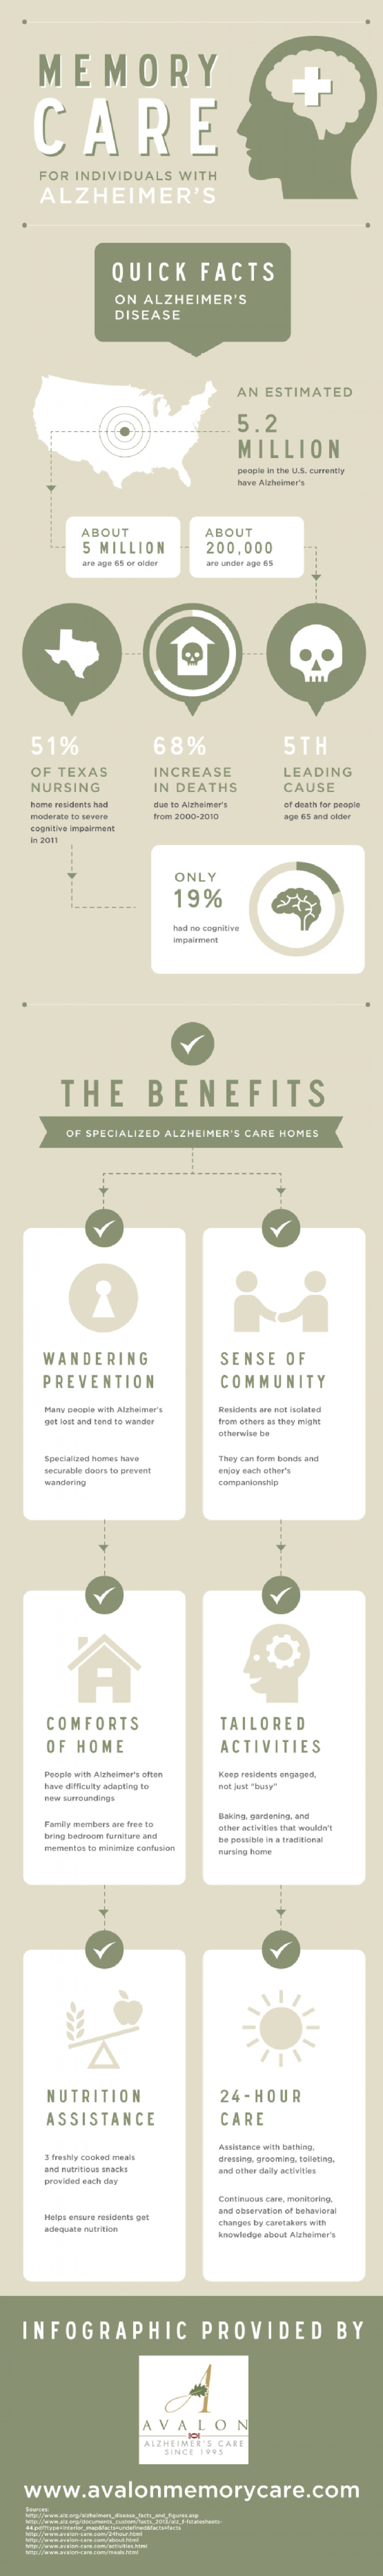 Memory Care for Individuals with Alzheimer's Infographic